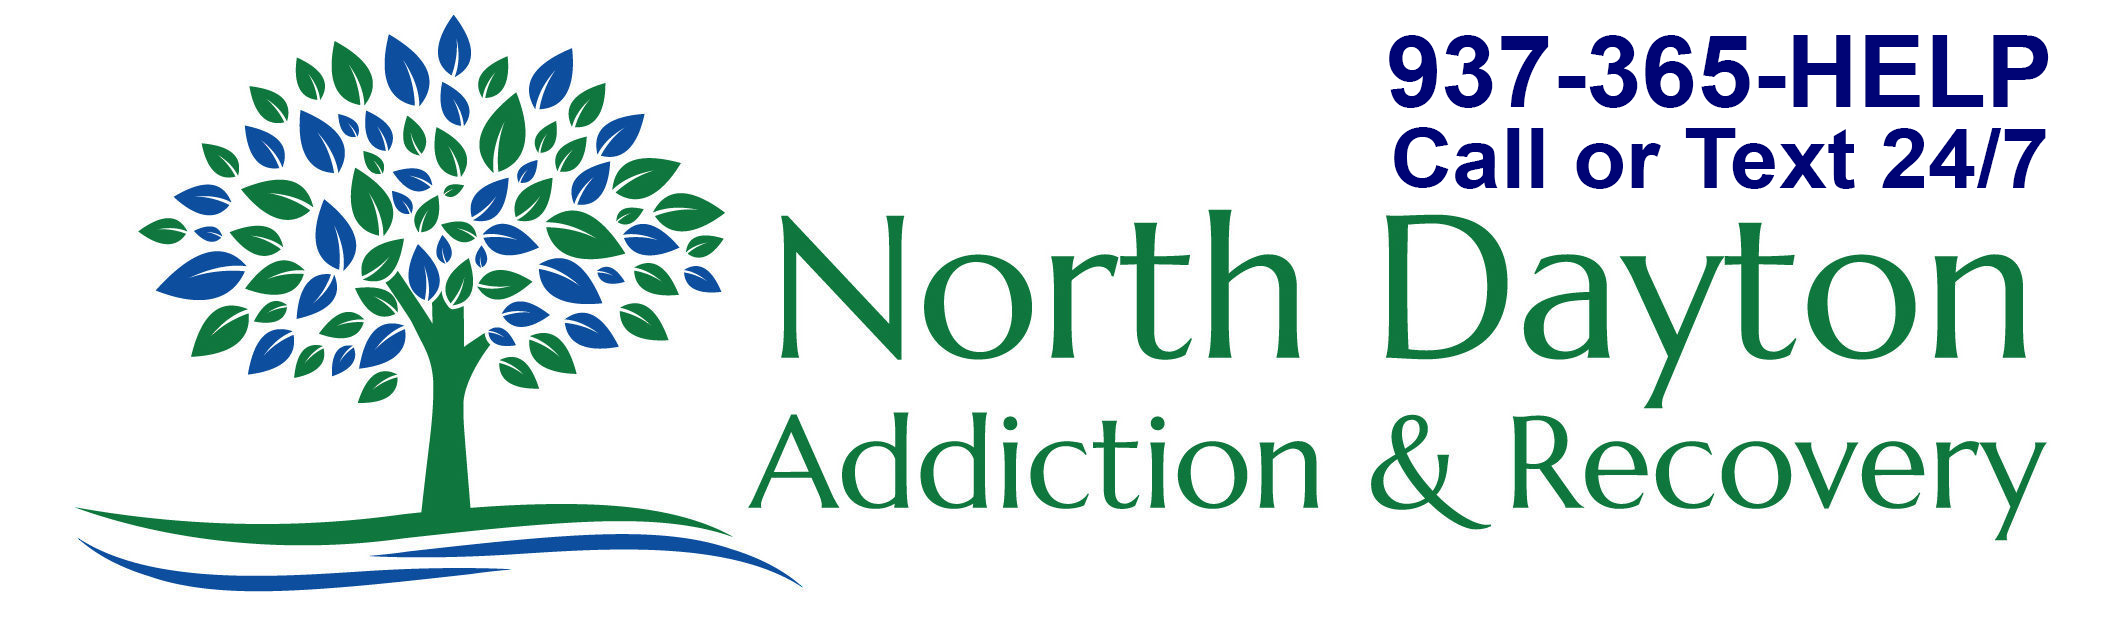 Opiate & Alcohol Addiction Treatment in Dayton, Ohio